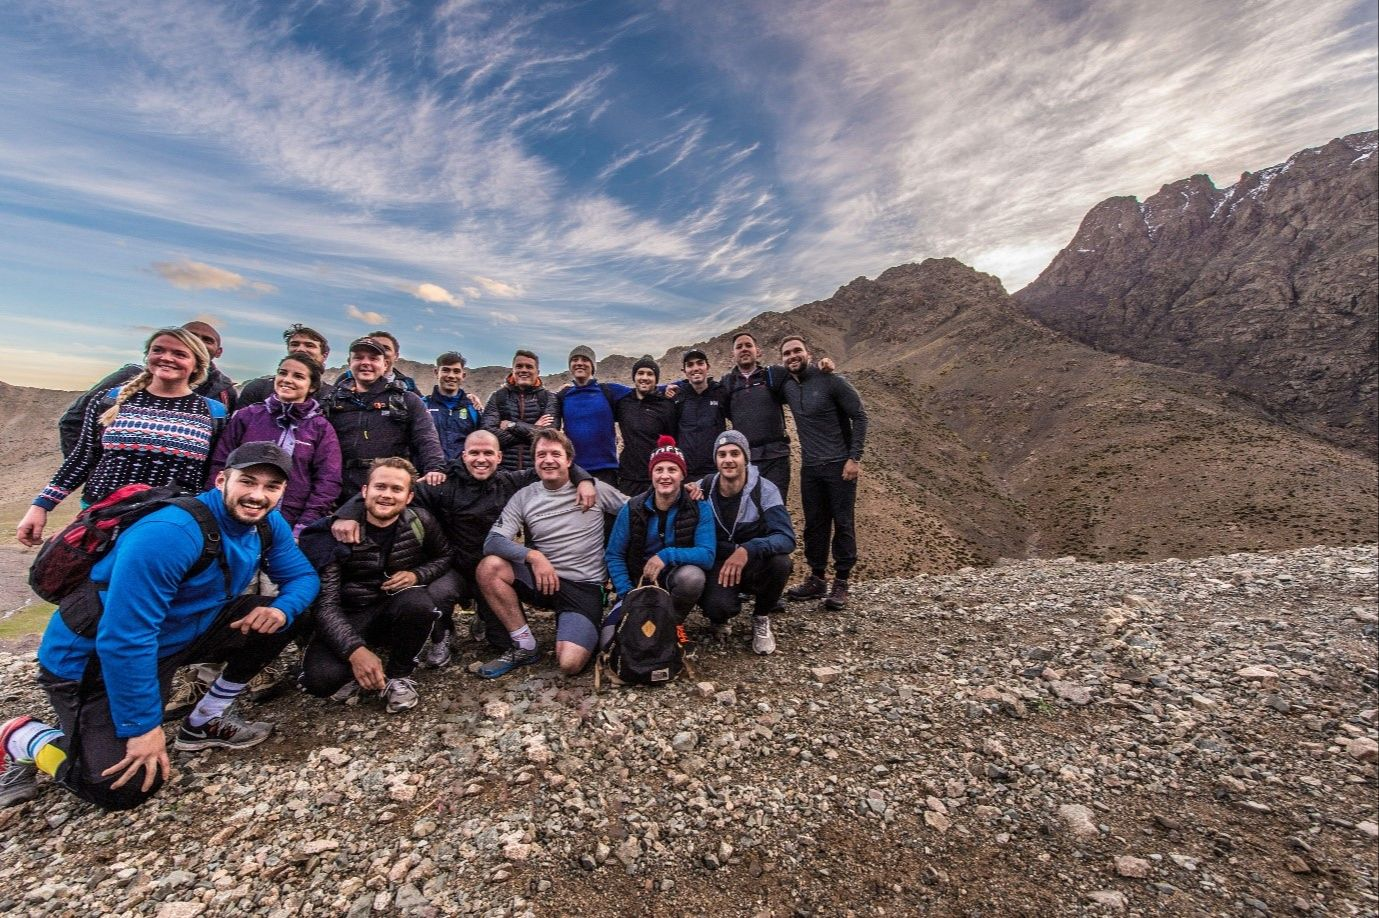 Some of the La Fosse management team stood atop the Atlas Mountains in their hiking gear